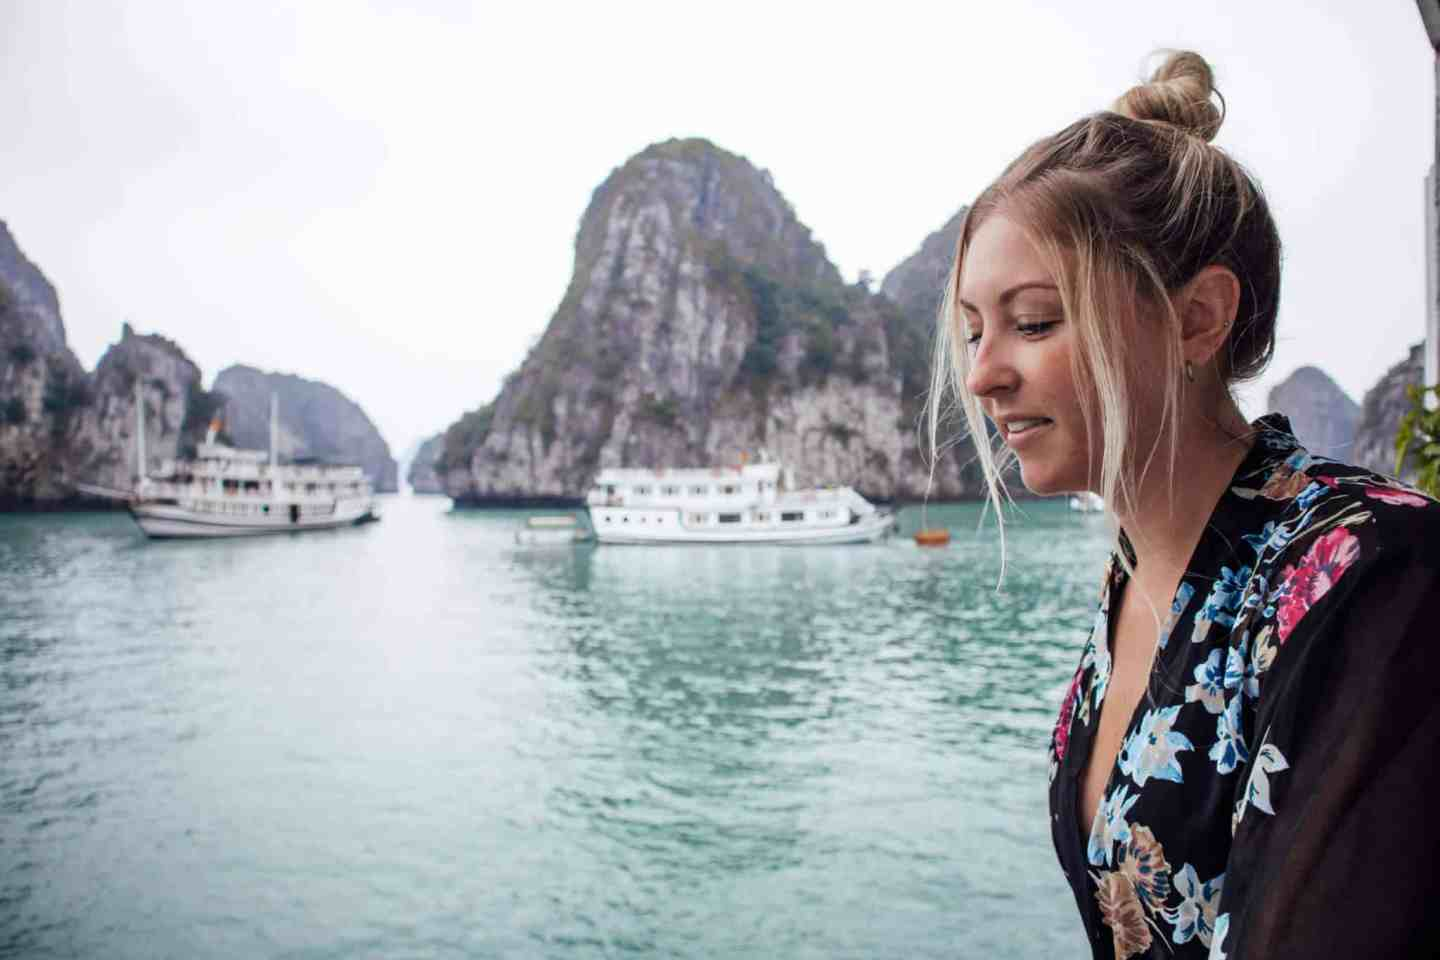 Thailand vs Vietnam - Which is Better for a Solo Female Traveler?